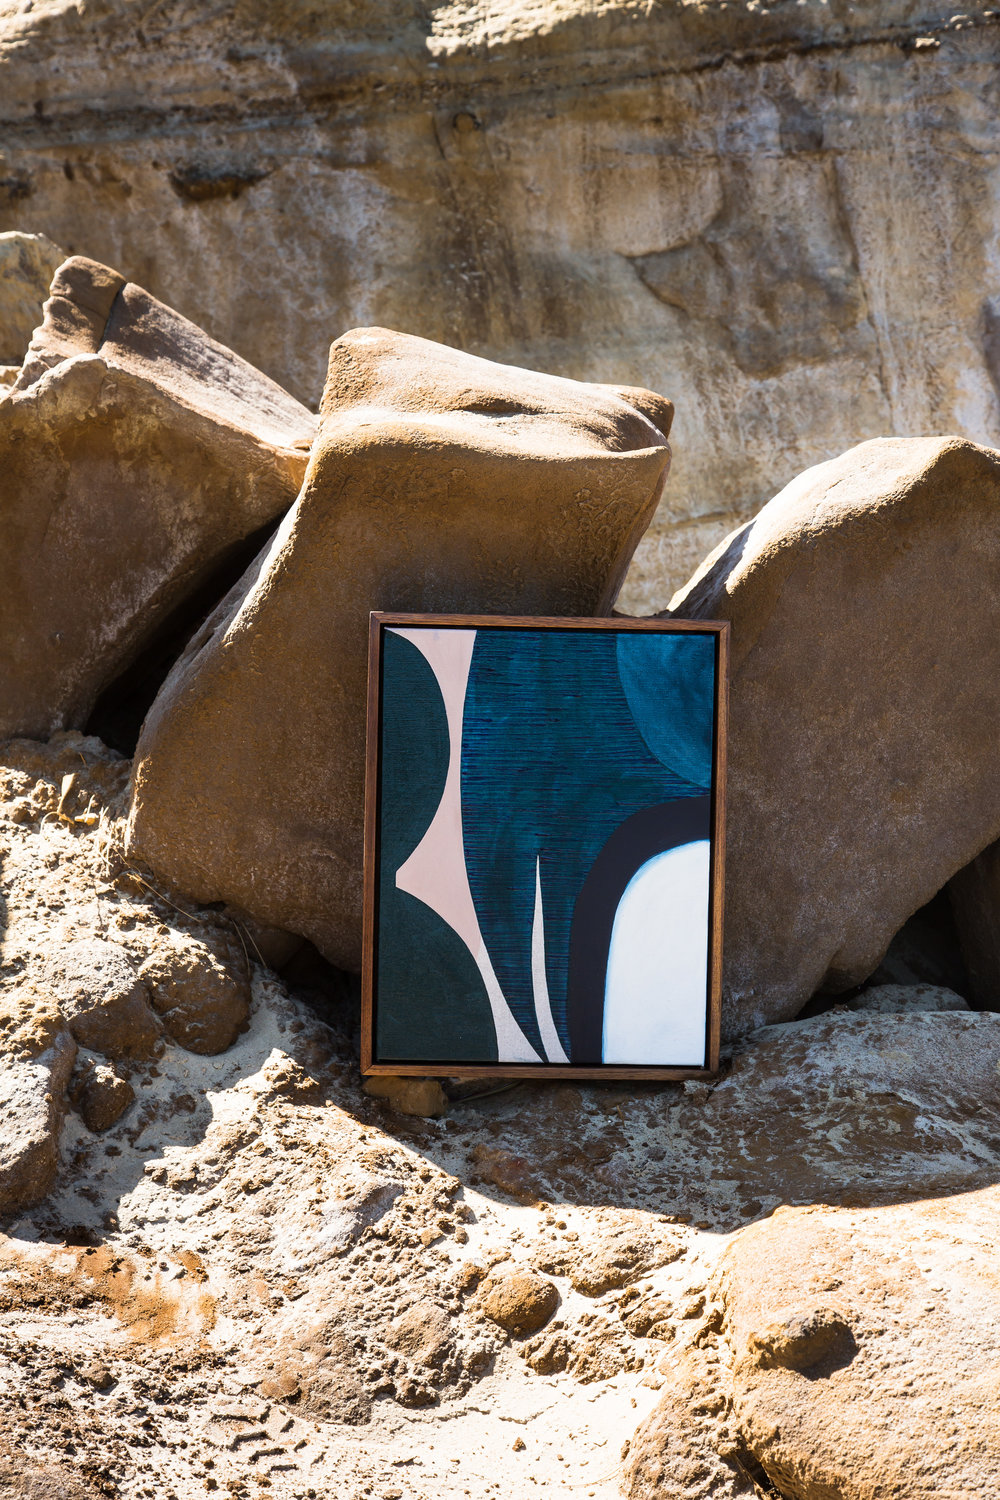 Original Artwork; Below The Earth shot on location at Red Bluff Cliffs, Black Rock, Victoria. Photograph by Suzi Appel.